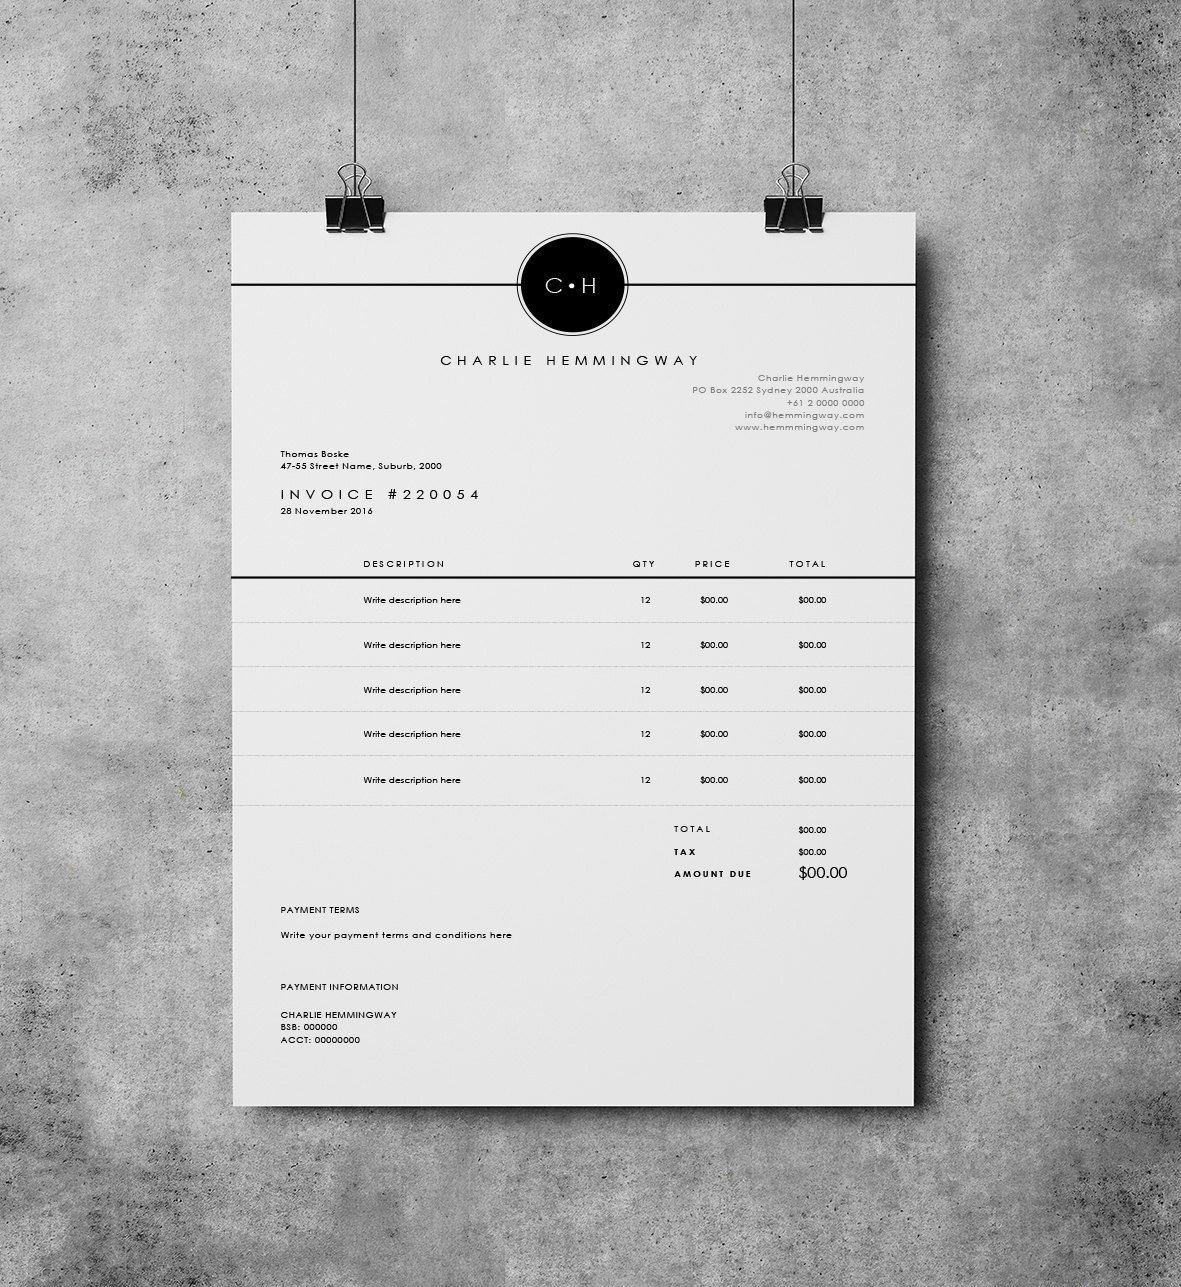 Invoice Template Invoice Design Receipt – School Invoice Template